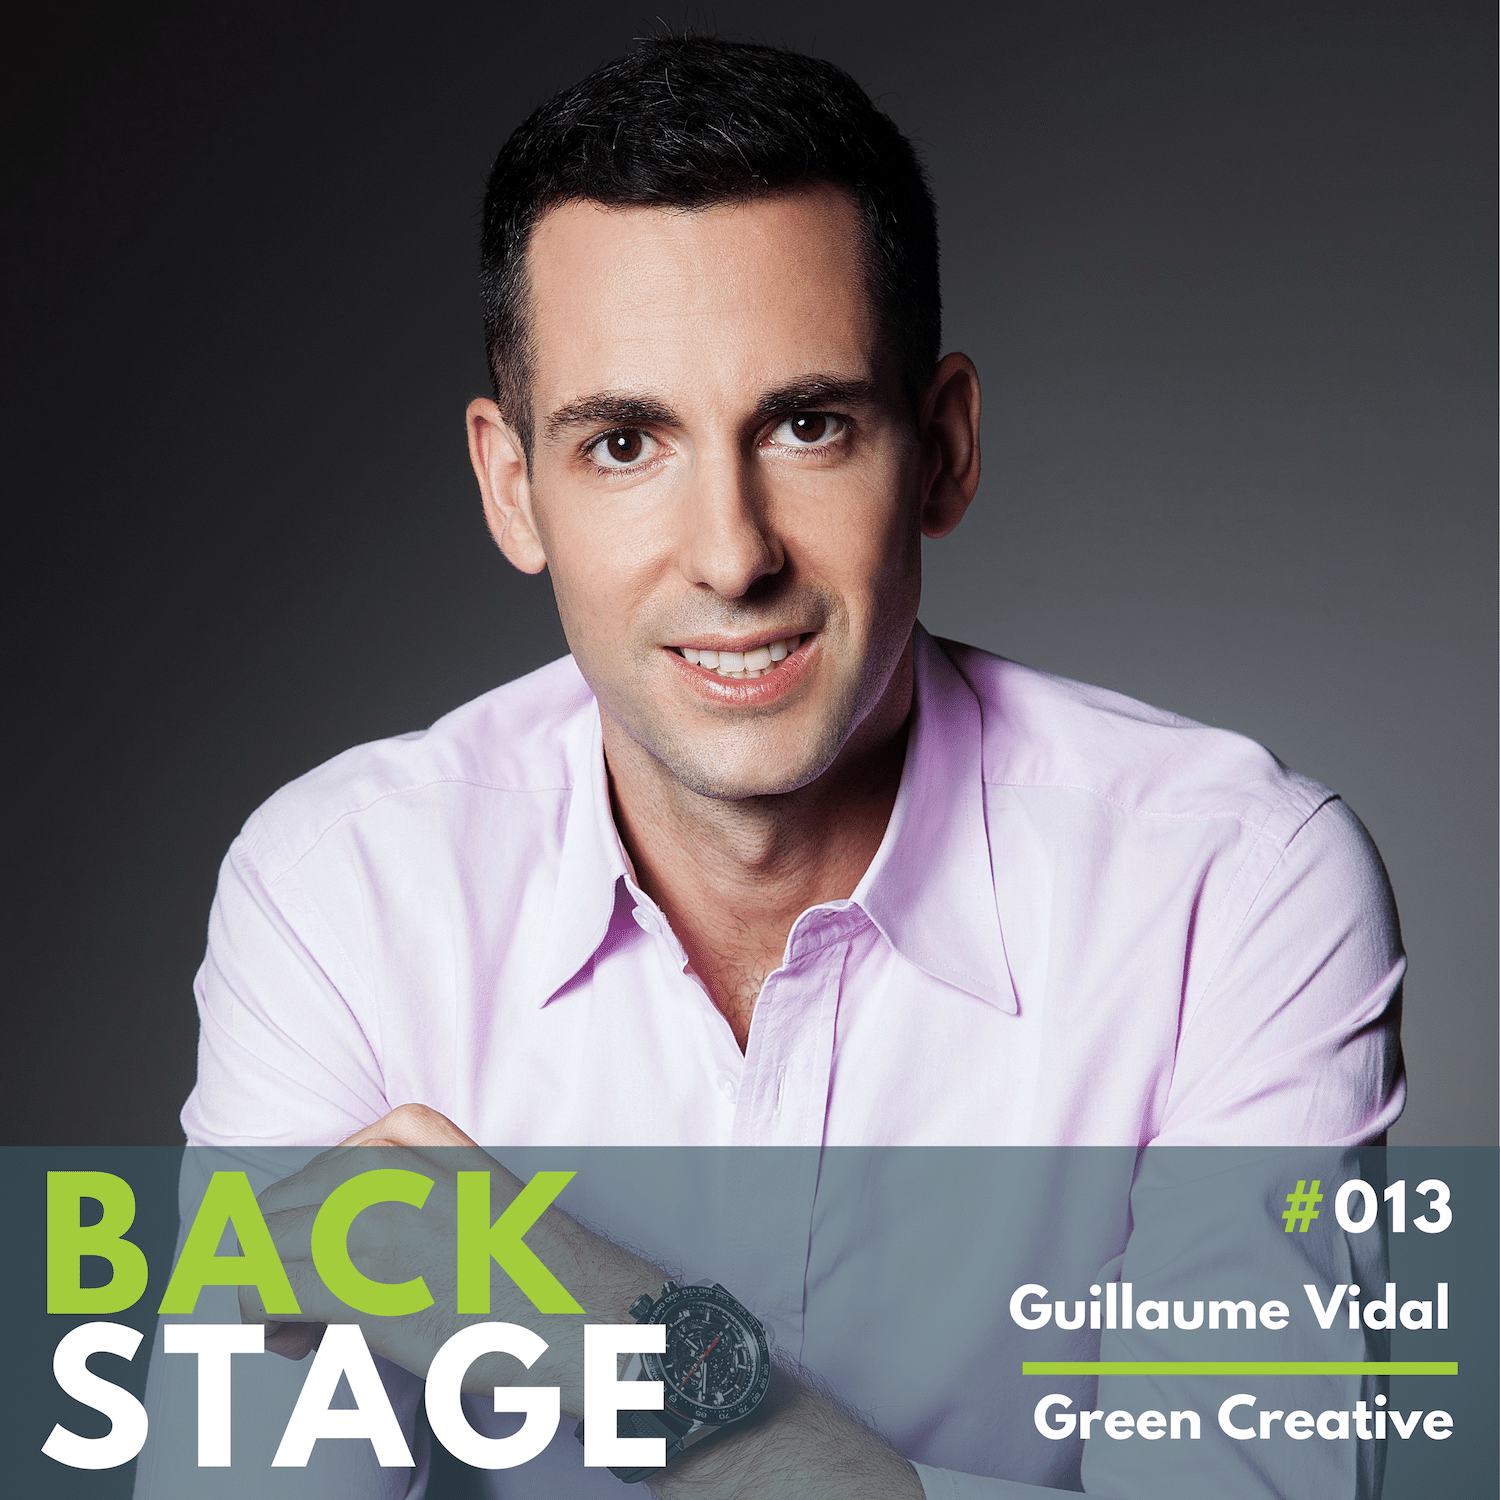 BACKSTAGE #013 – Guillaume Vida - Green Creative